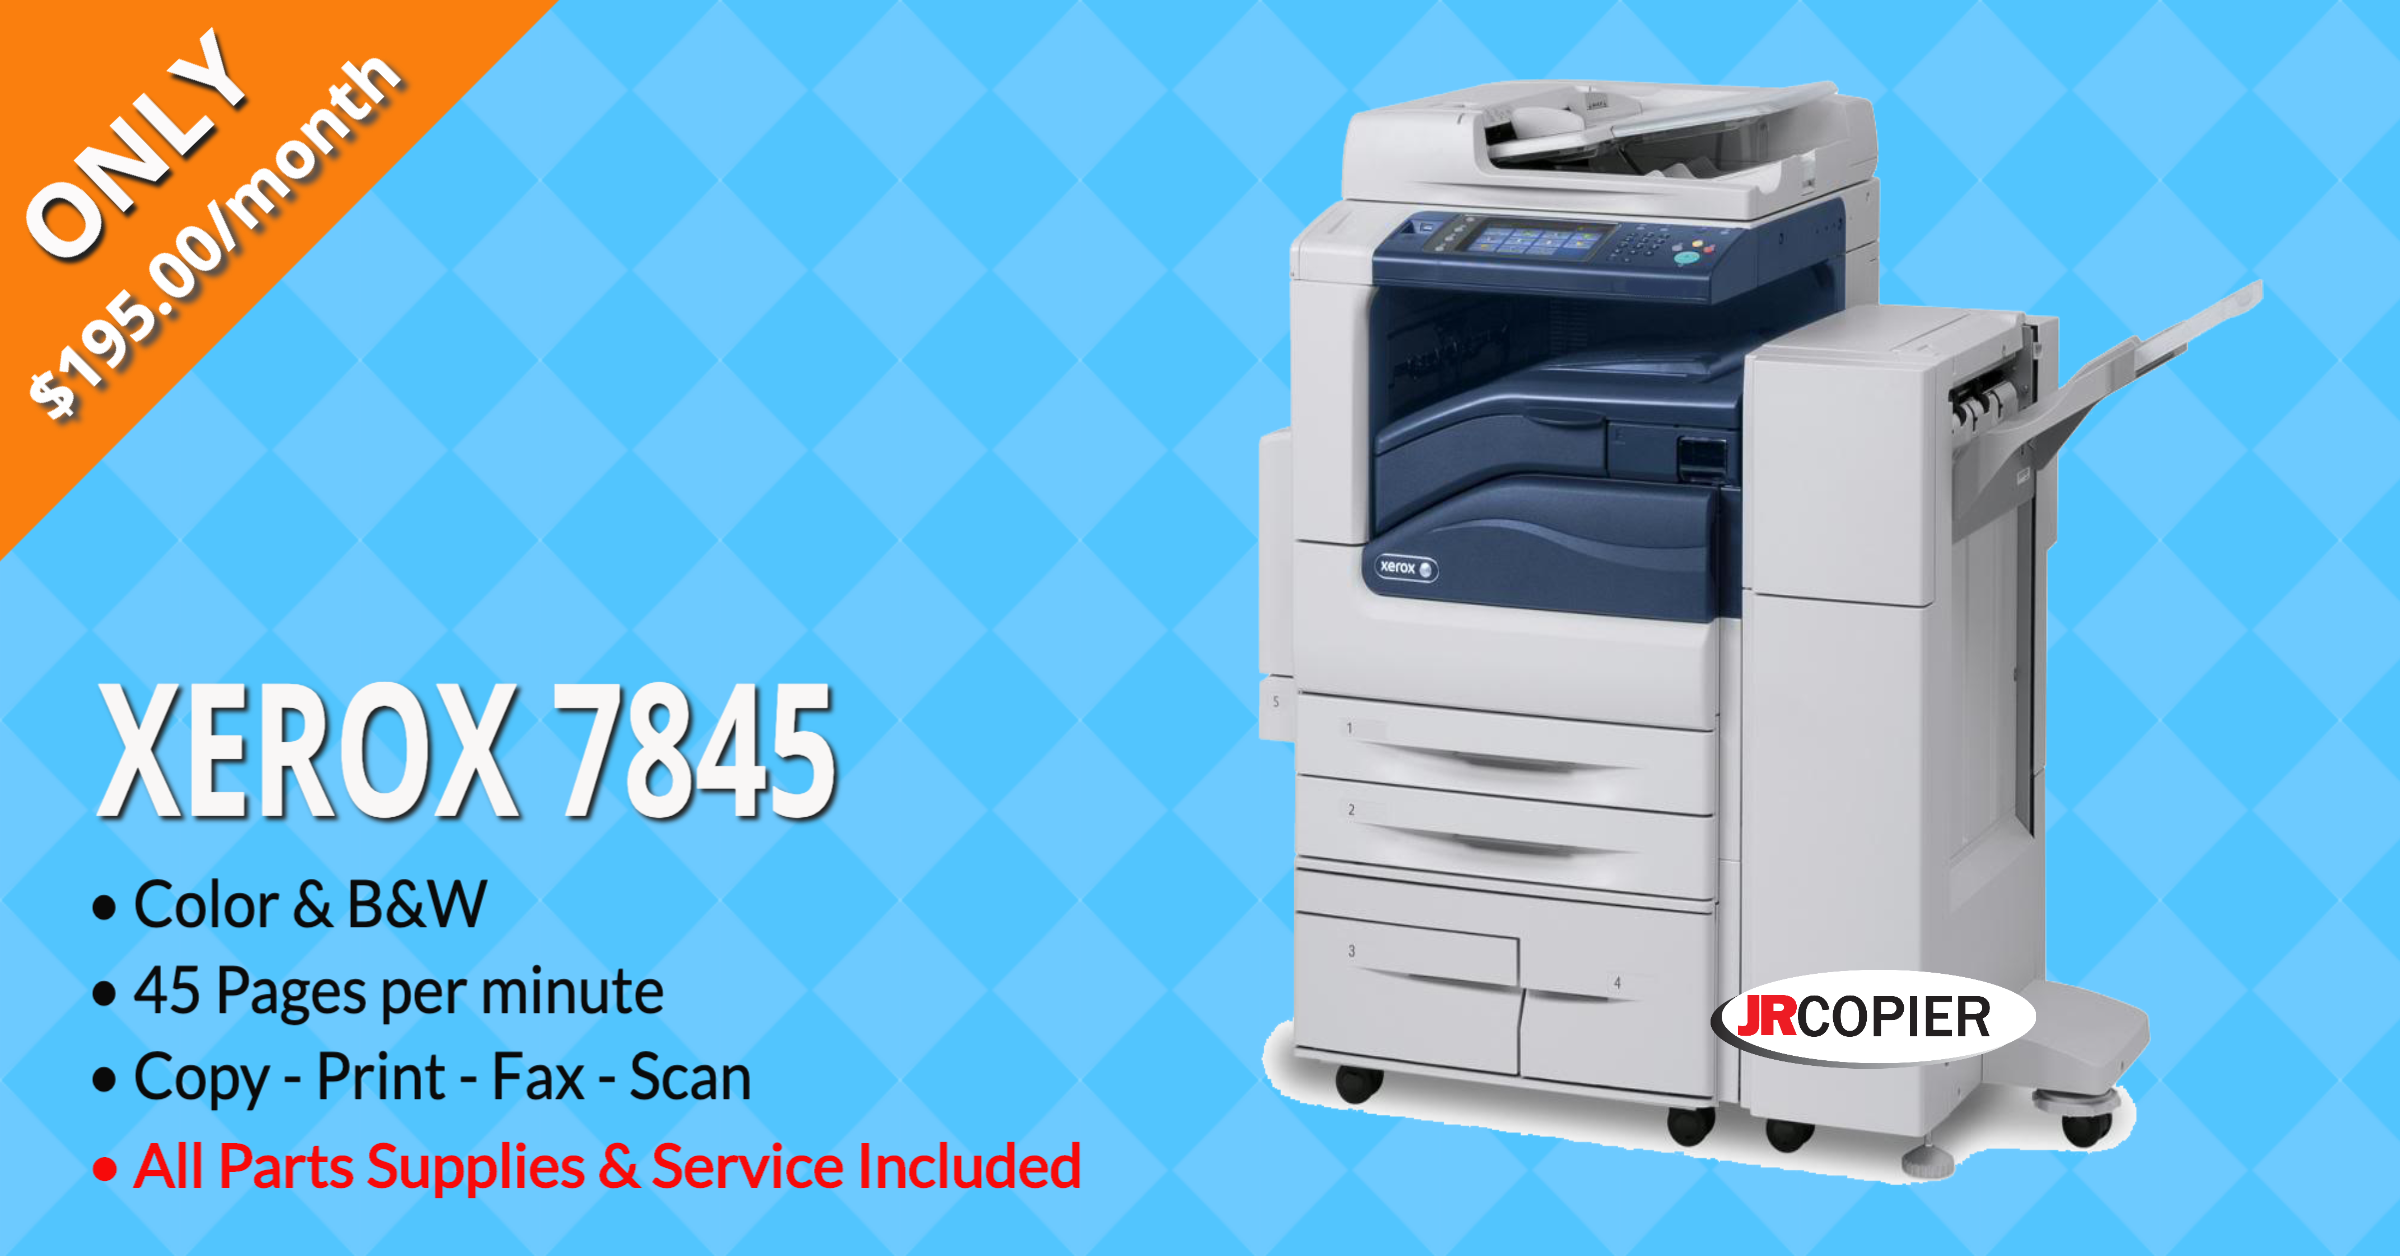 Printer Leasing Company 32746, 32795, 32799